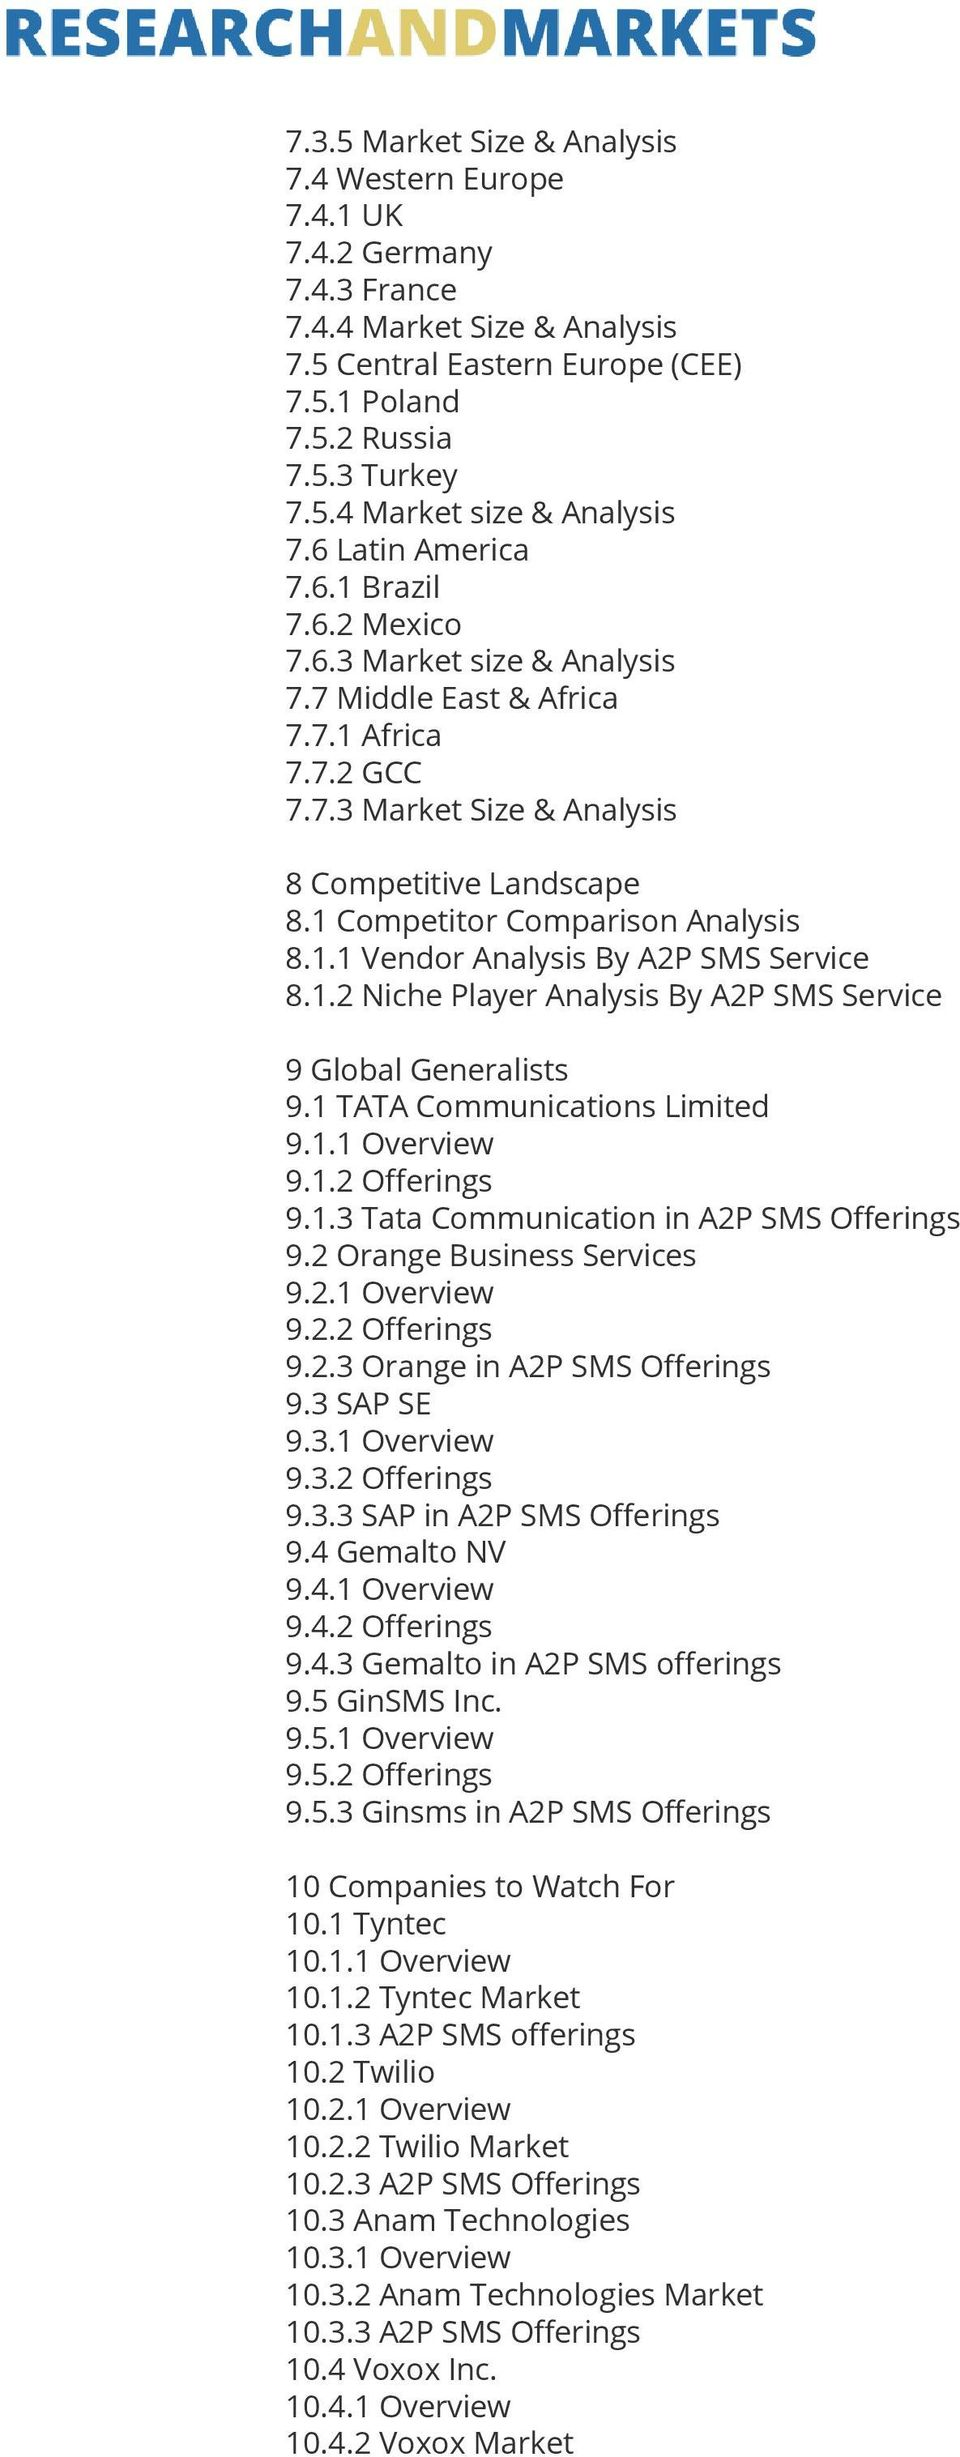 1 Competitor Comparison Analysis 8.1.1 Vendor Analysis By A2P SMS Service 8.1.2 Niche Player Analysis By A2P SMS Service 9 Global Generalists 9.1 TATA Communications Limited 9.1.1 Overview 9.1.2 Offerings 9.